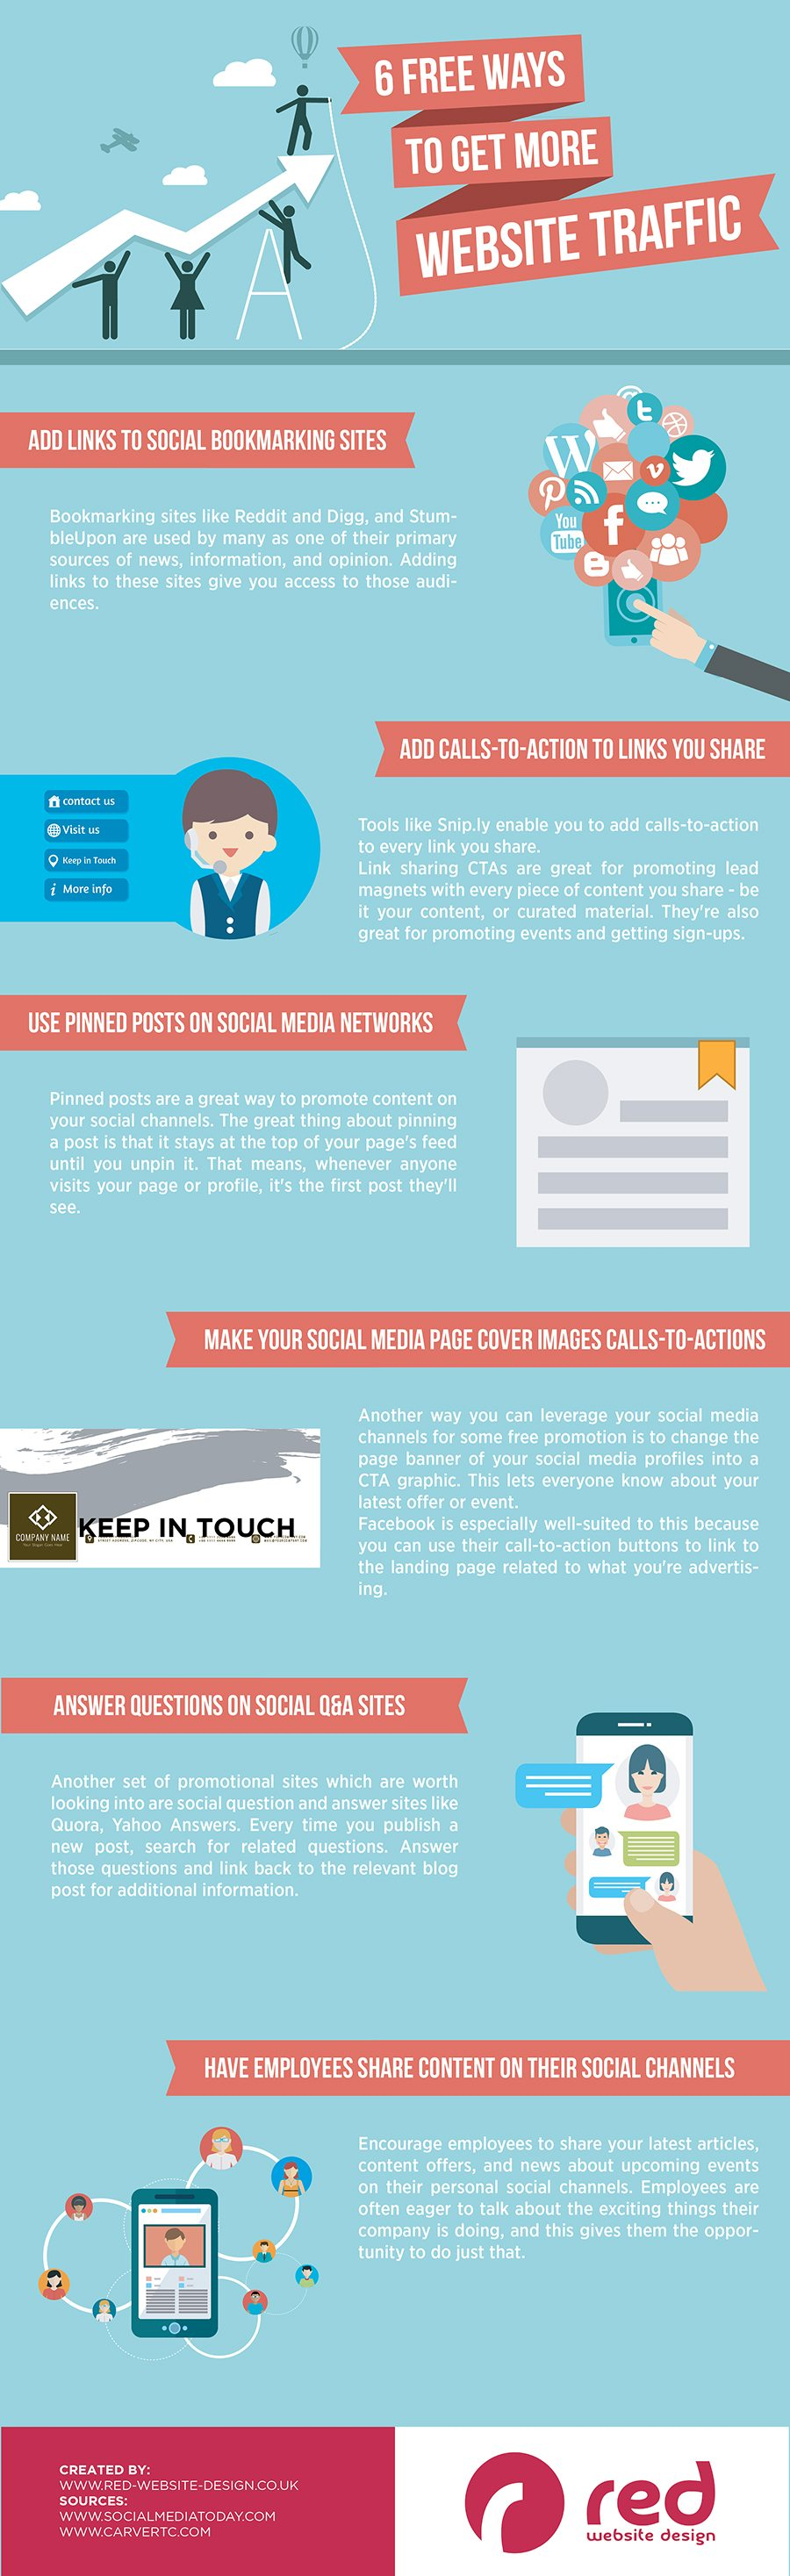 6 Free Ways You Probably Aren't Using to Generate Website Traffic [Infographic]   Social Media Today